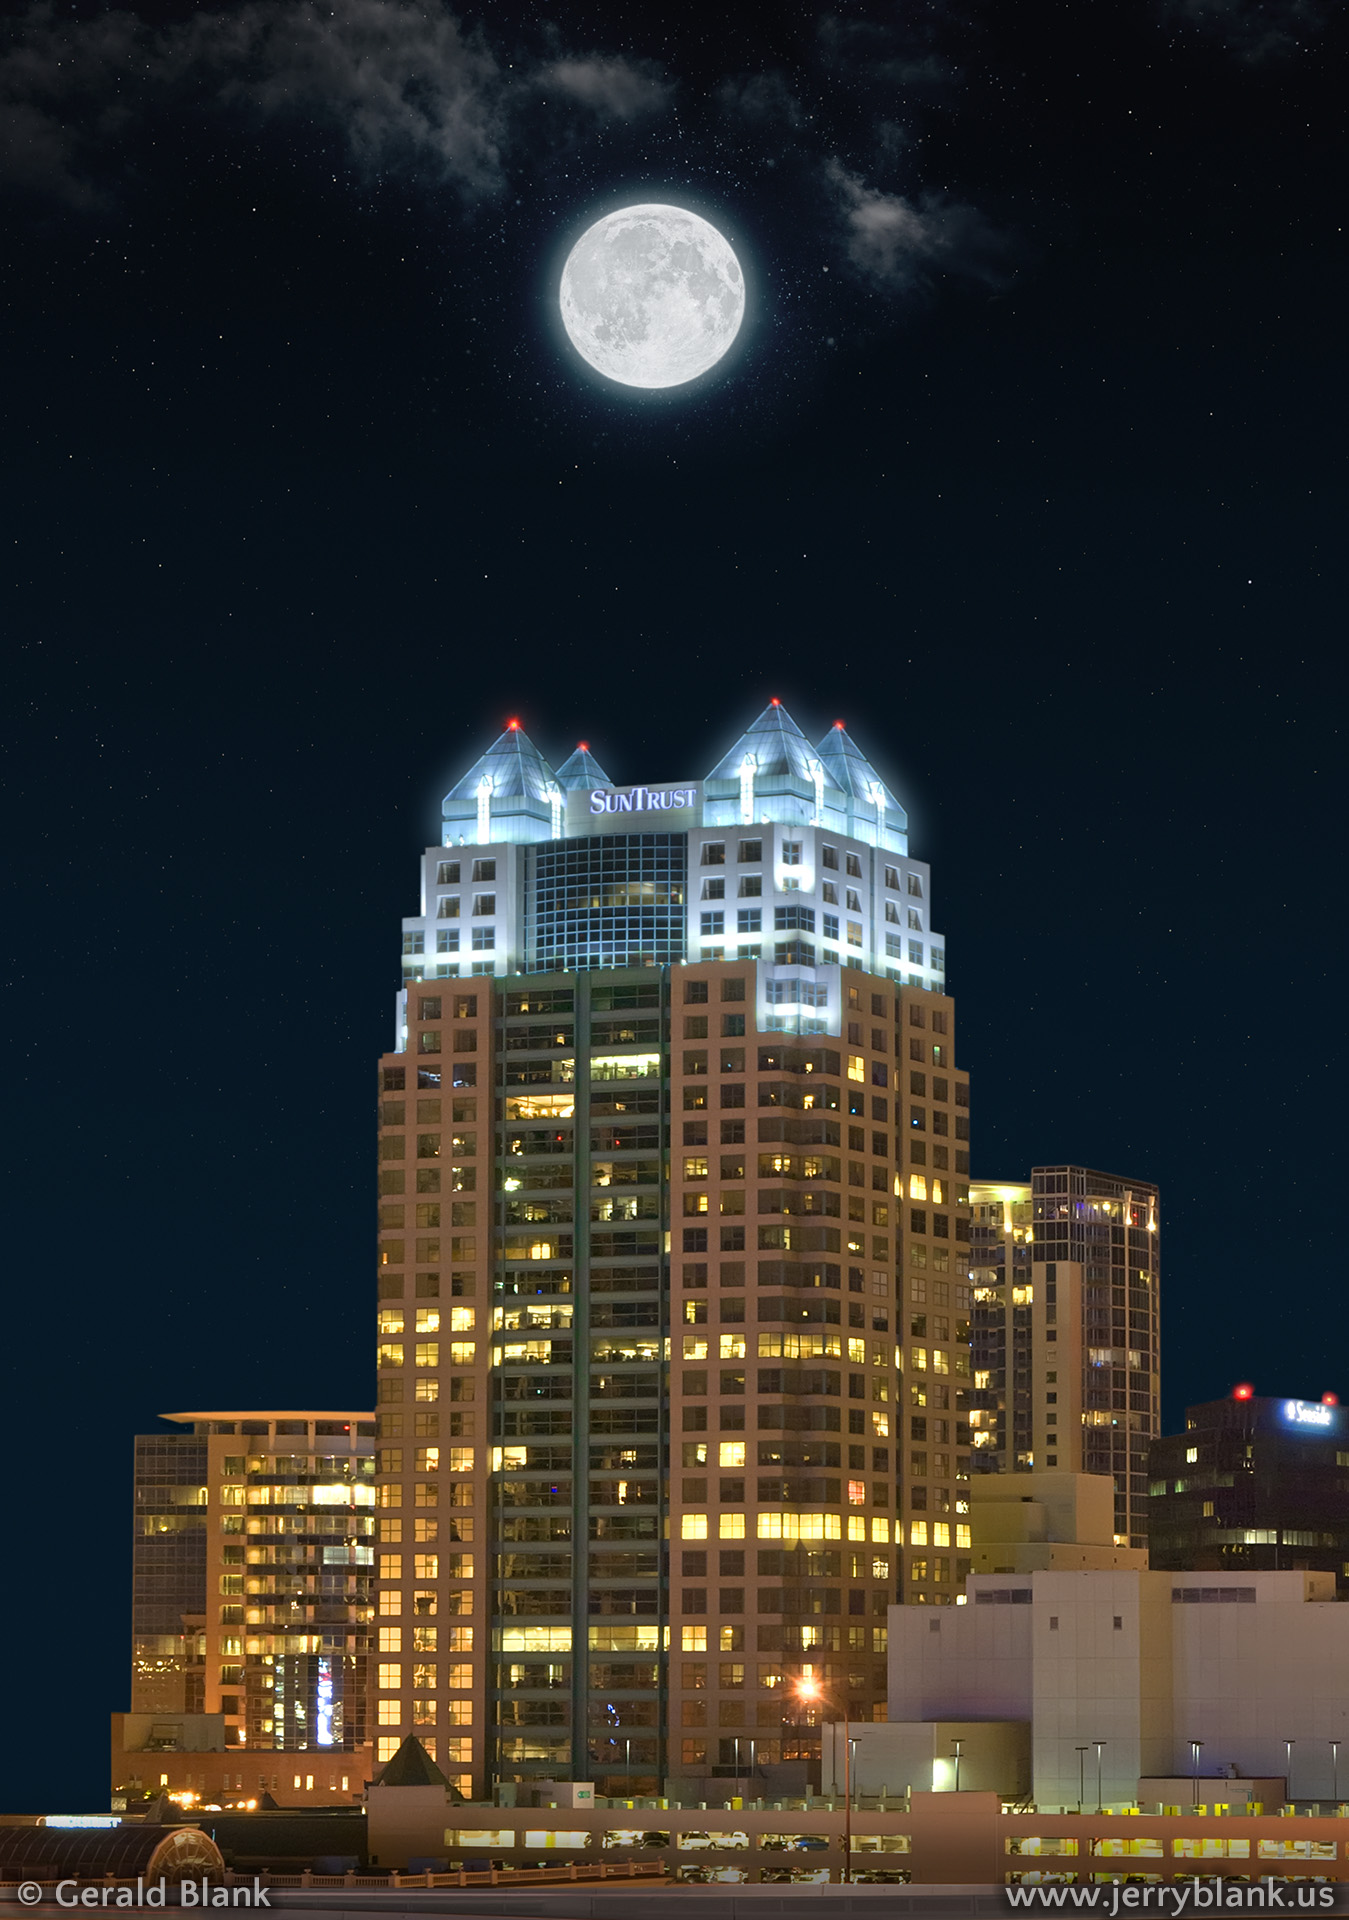 #14930 - Moonlit view of the SunTrust building in downtown Orlando, Florida